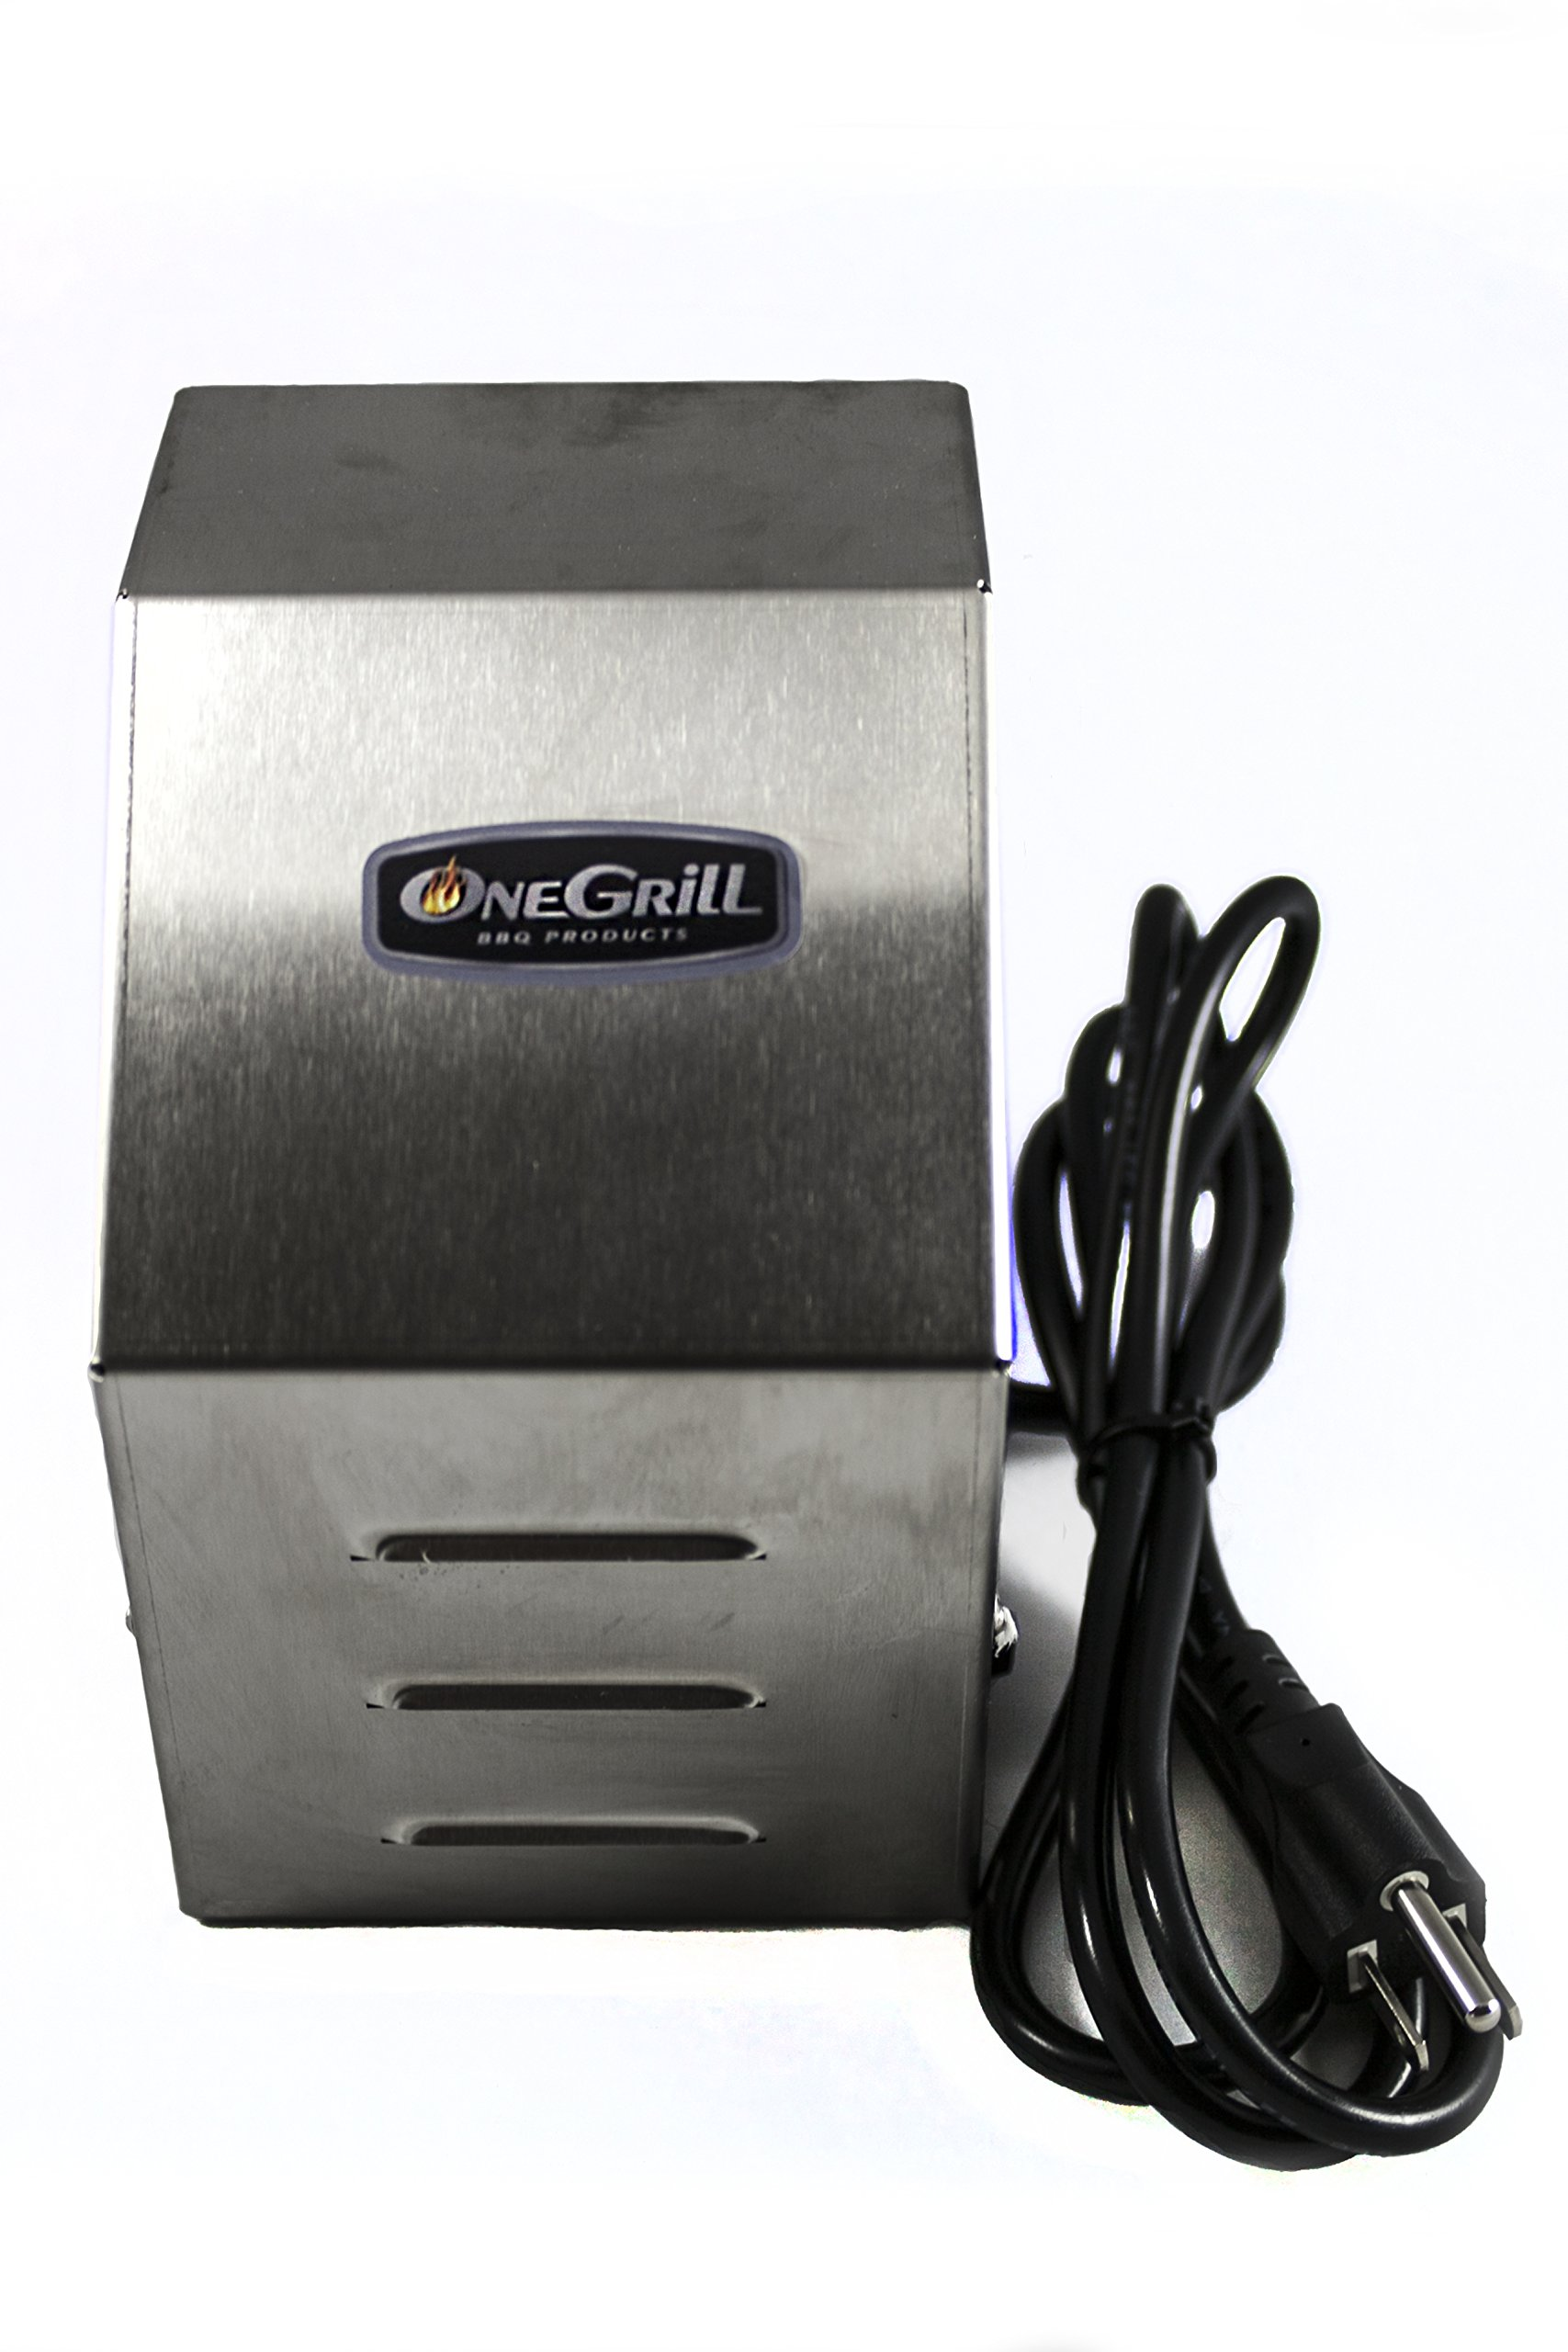 OneGrill 4PM08 Heavy Duty Stainless Steel Grill Rotisserie Motor - Electric 27 Watt 110/120 Volt - 200 in./lbs. Stall Torque - 5/16 Inch Square Drive - All Metal Commercial Grade Geartrain